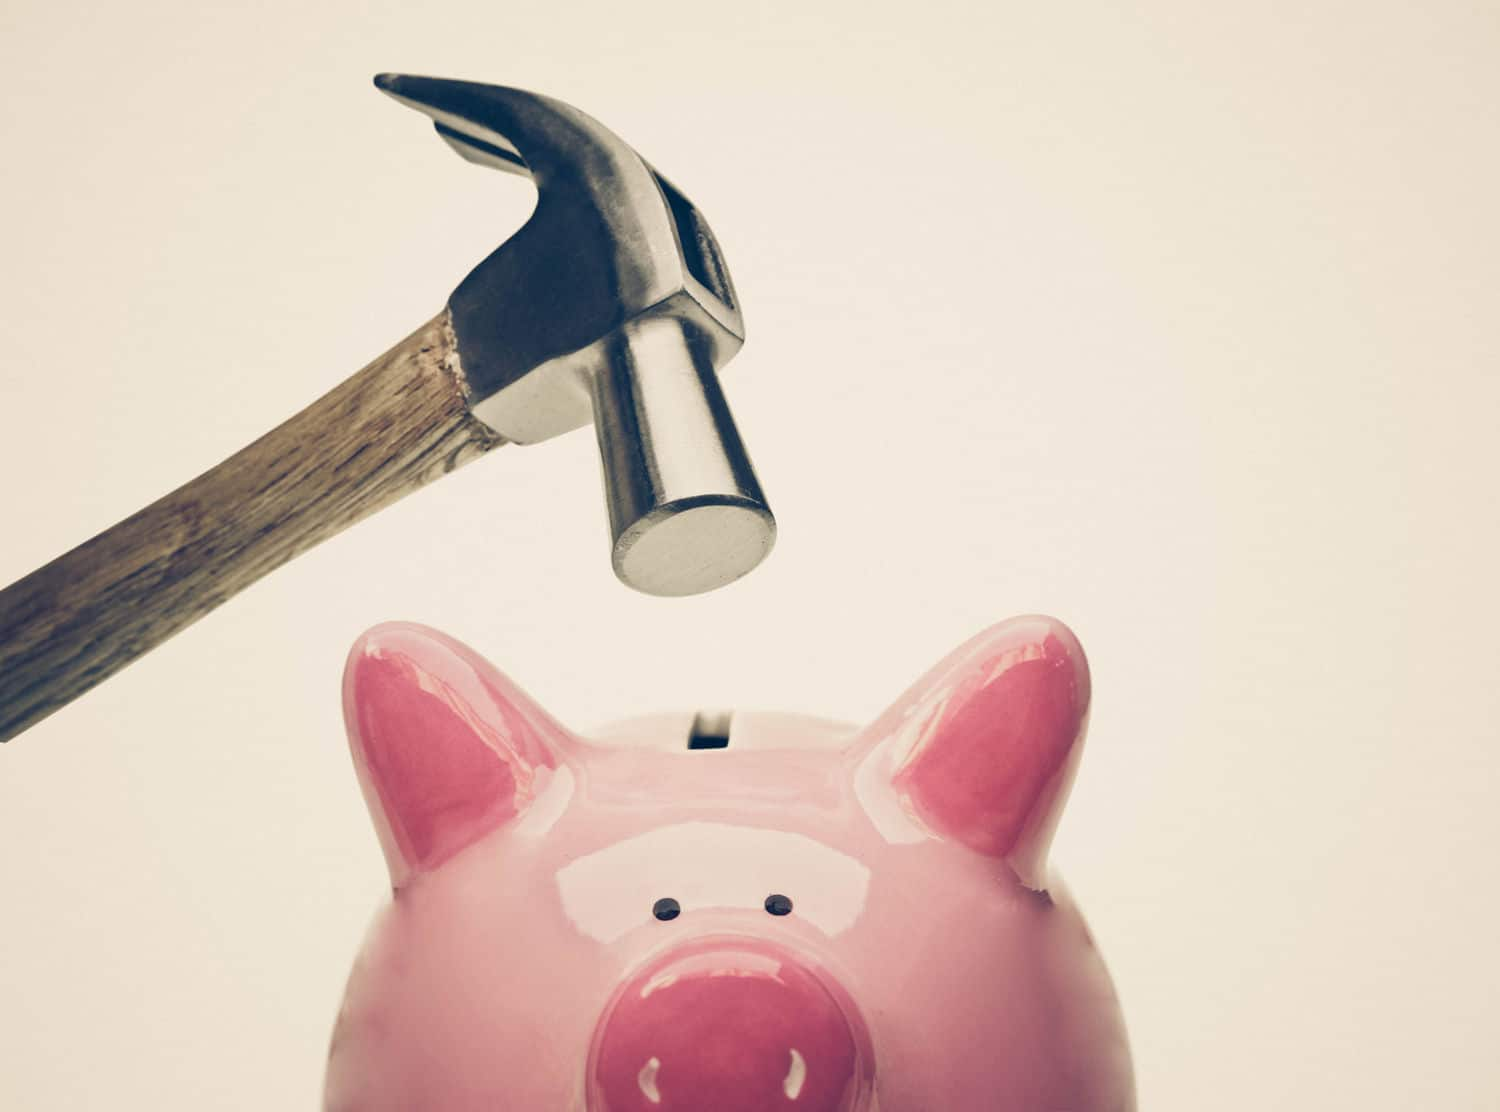 Hammer about to break a piggy bank - Benefit Strategies Inc